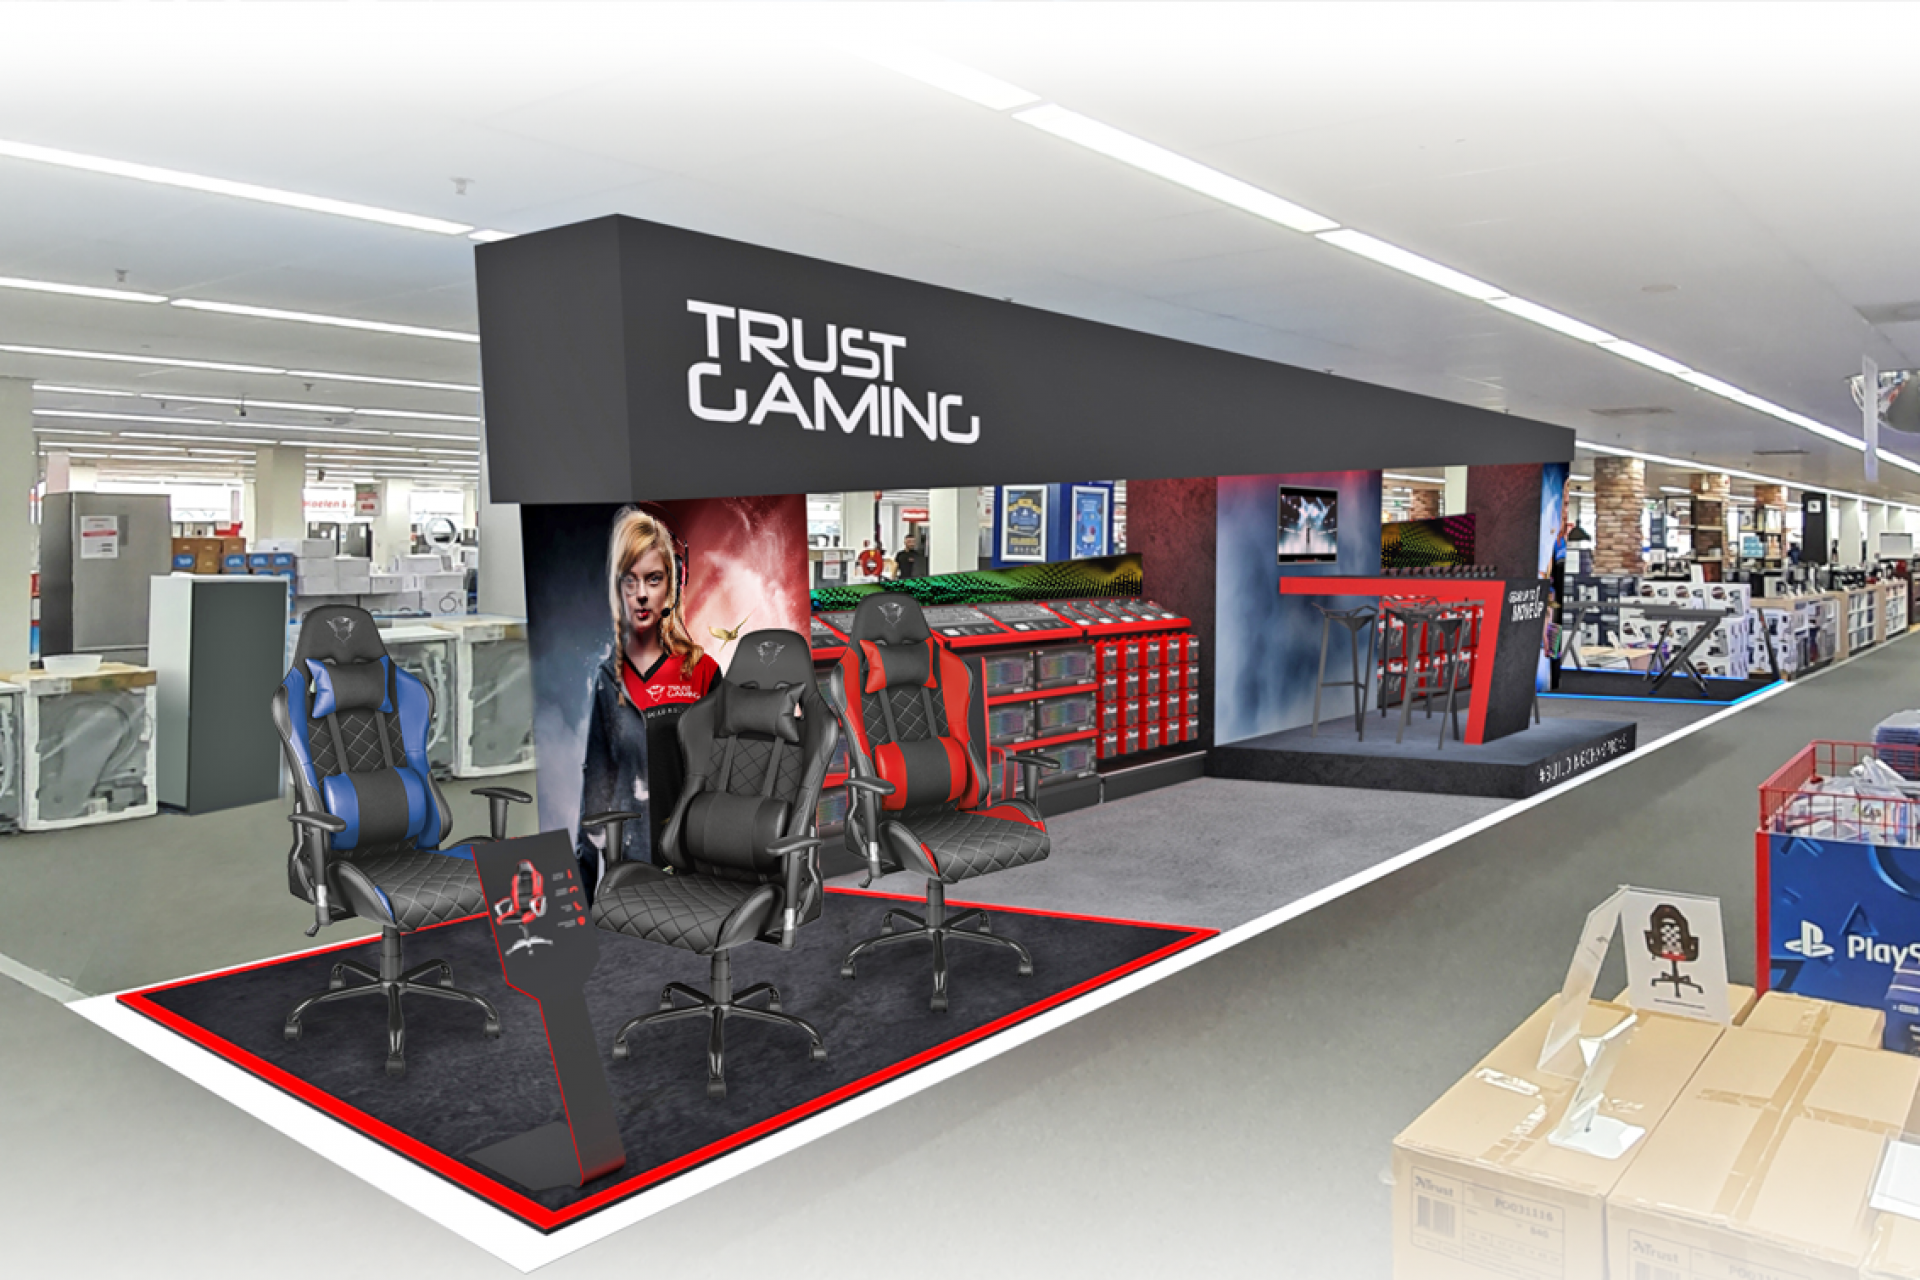 TRUST - Gamechanging Retail Presentation